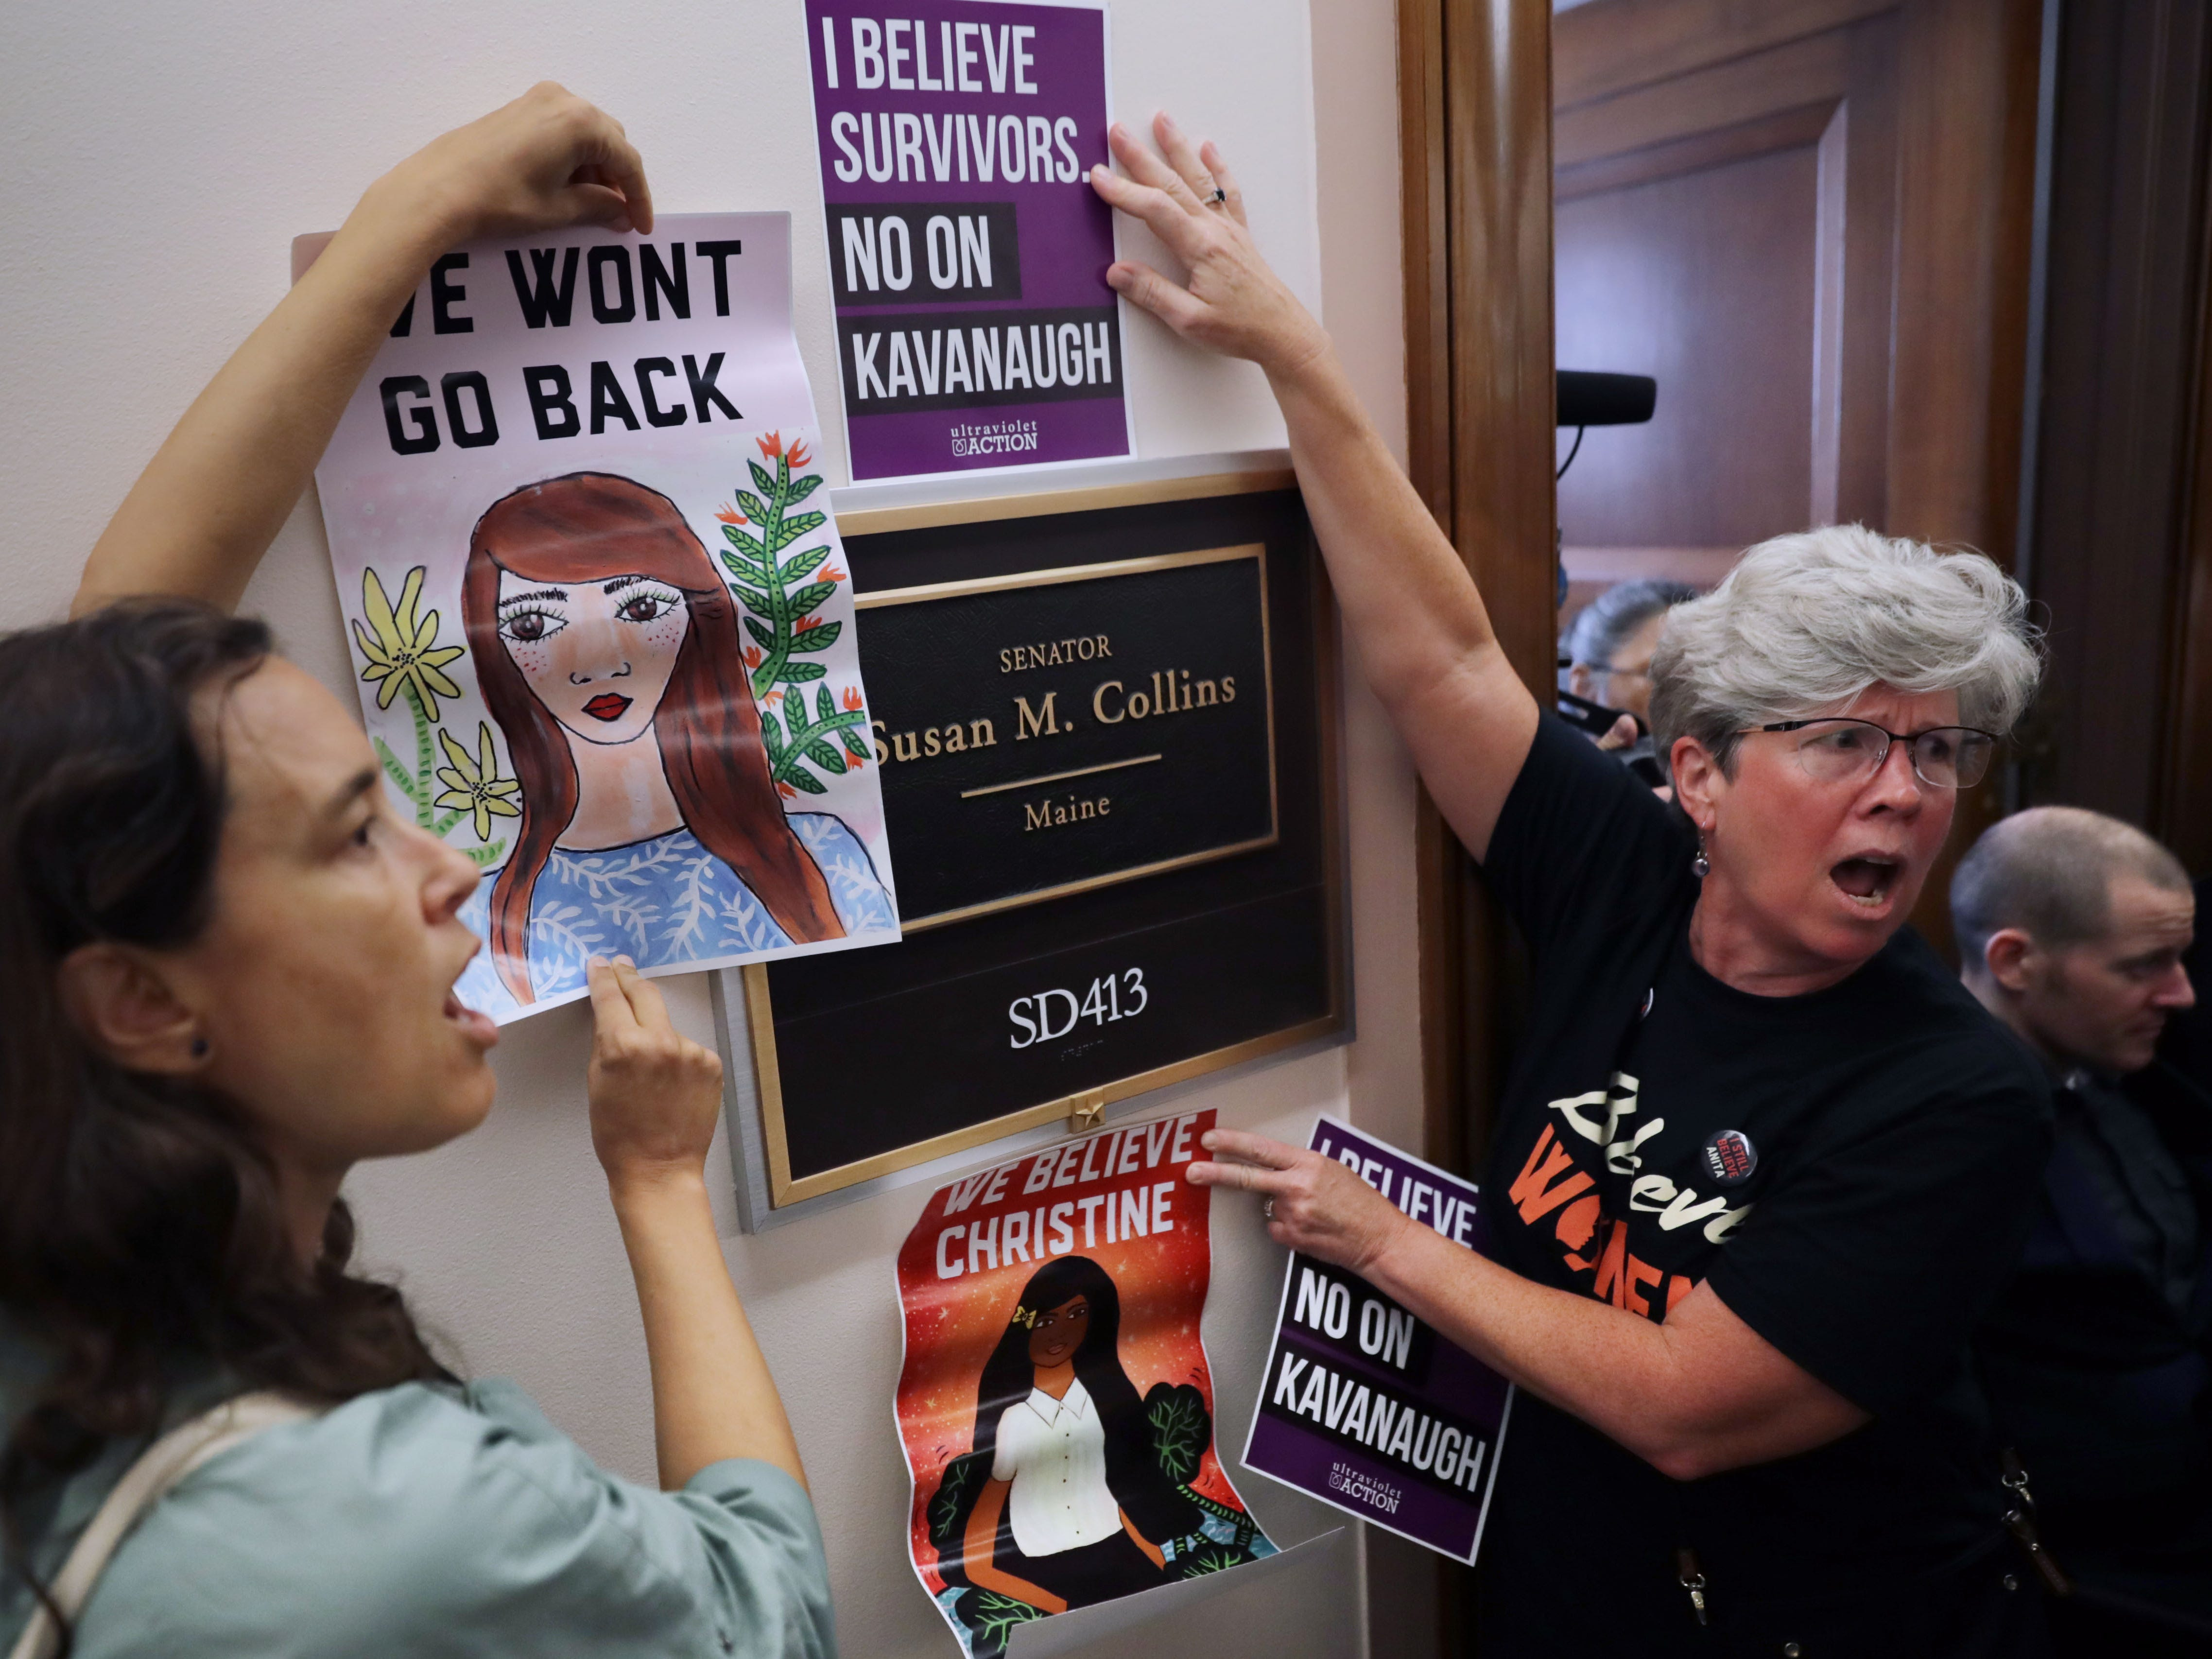 WASHINGTON, DC - SEPTEMBER 26:  Dozens of protesters, including many sexual assault survivors, demonstrate against the appointment of Supreme Court nominee Judge Brett Kavanaugh outside the offices of Sen. Susan Collins (R-ME) in the Dirksen Senate Office Building on Capitol Hill September 26, 2018 in Washington, DC. More than a dozen protesters were arrested after visiting the offices of three women senators to demonstrate against the appointment of Kavanuagh, who has been accused by at least two women of sexual assault. (Photo by Chip Somodevilla/Getty Images) ORG XMIT: 775233312 ORIG FILE ID: 1044935888